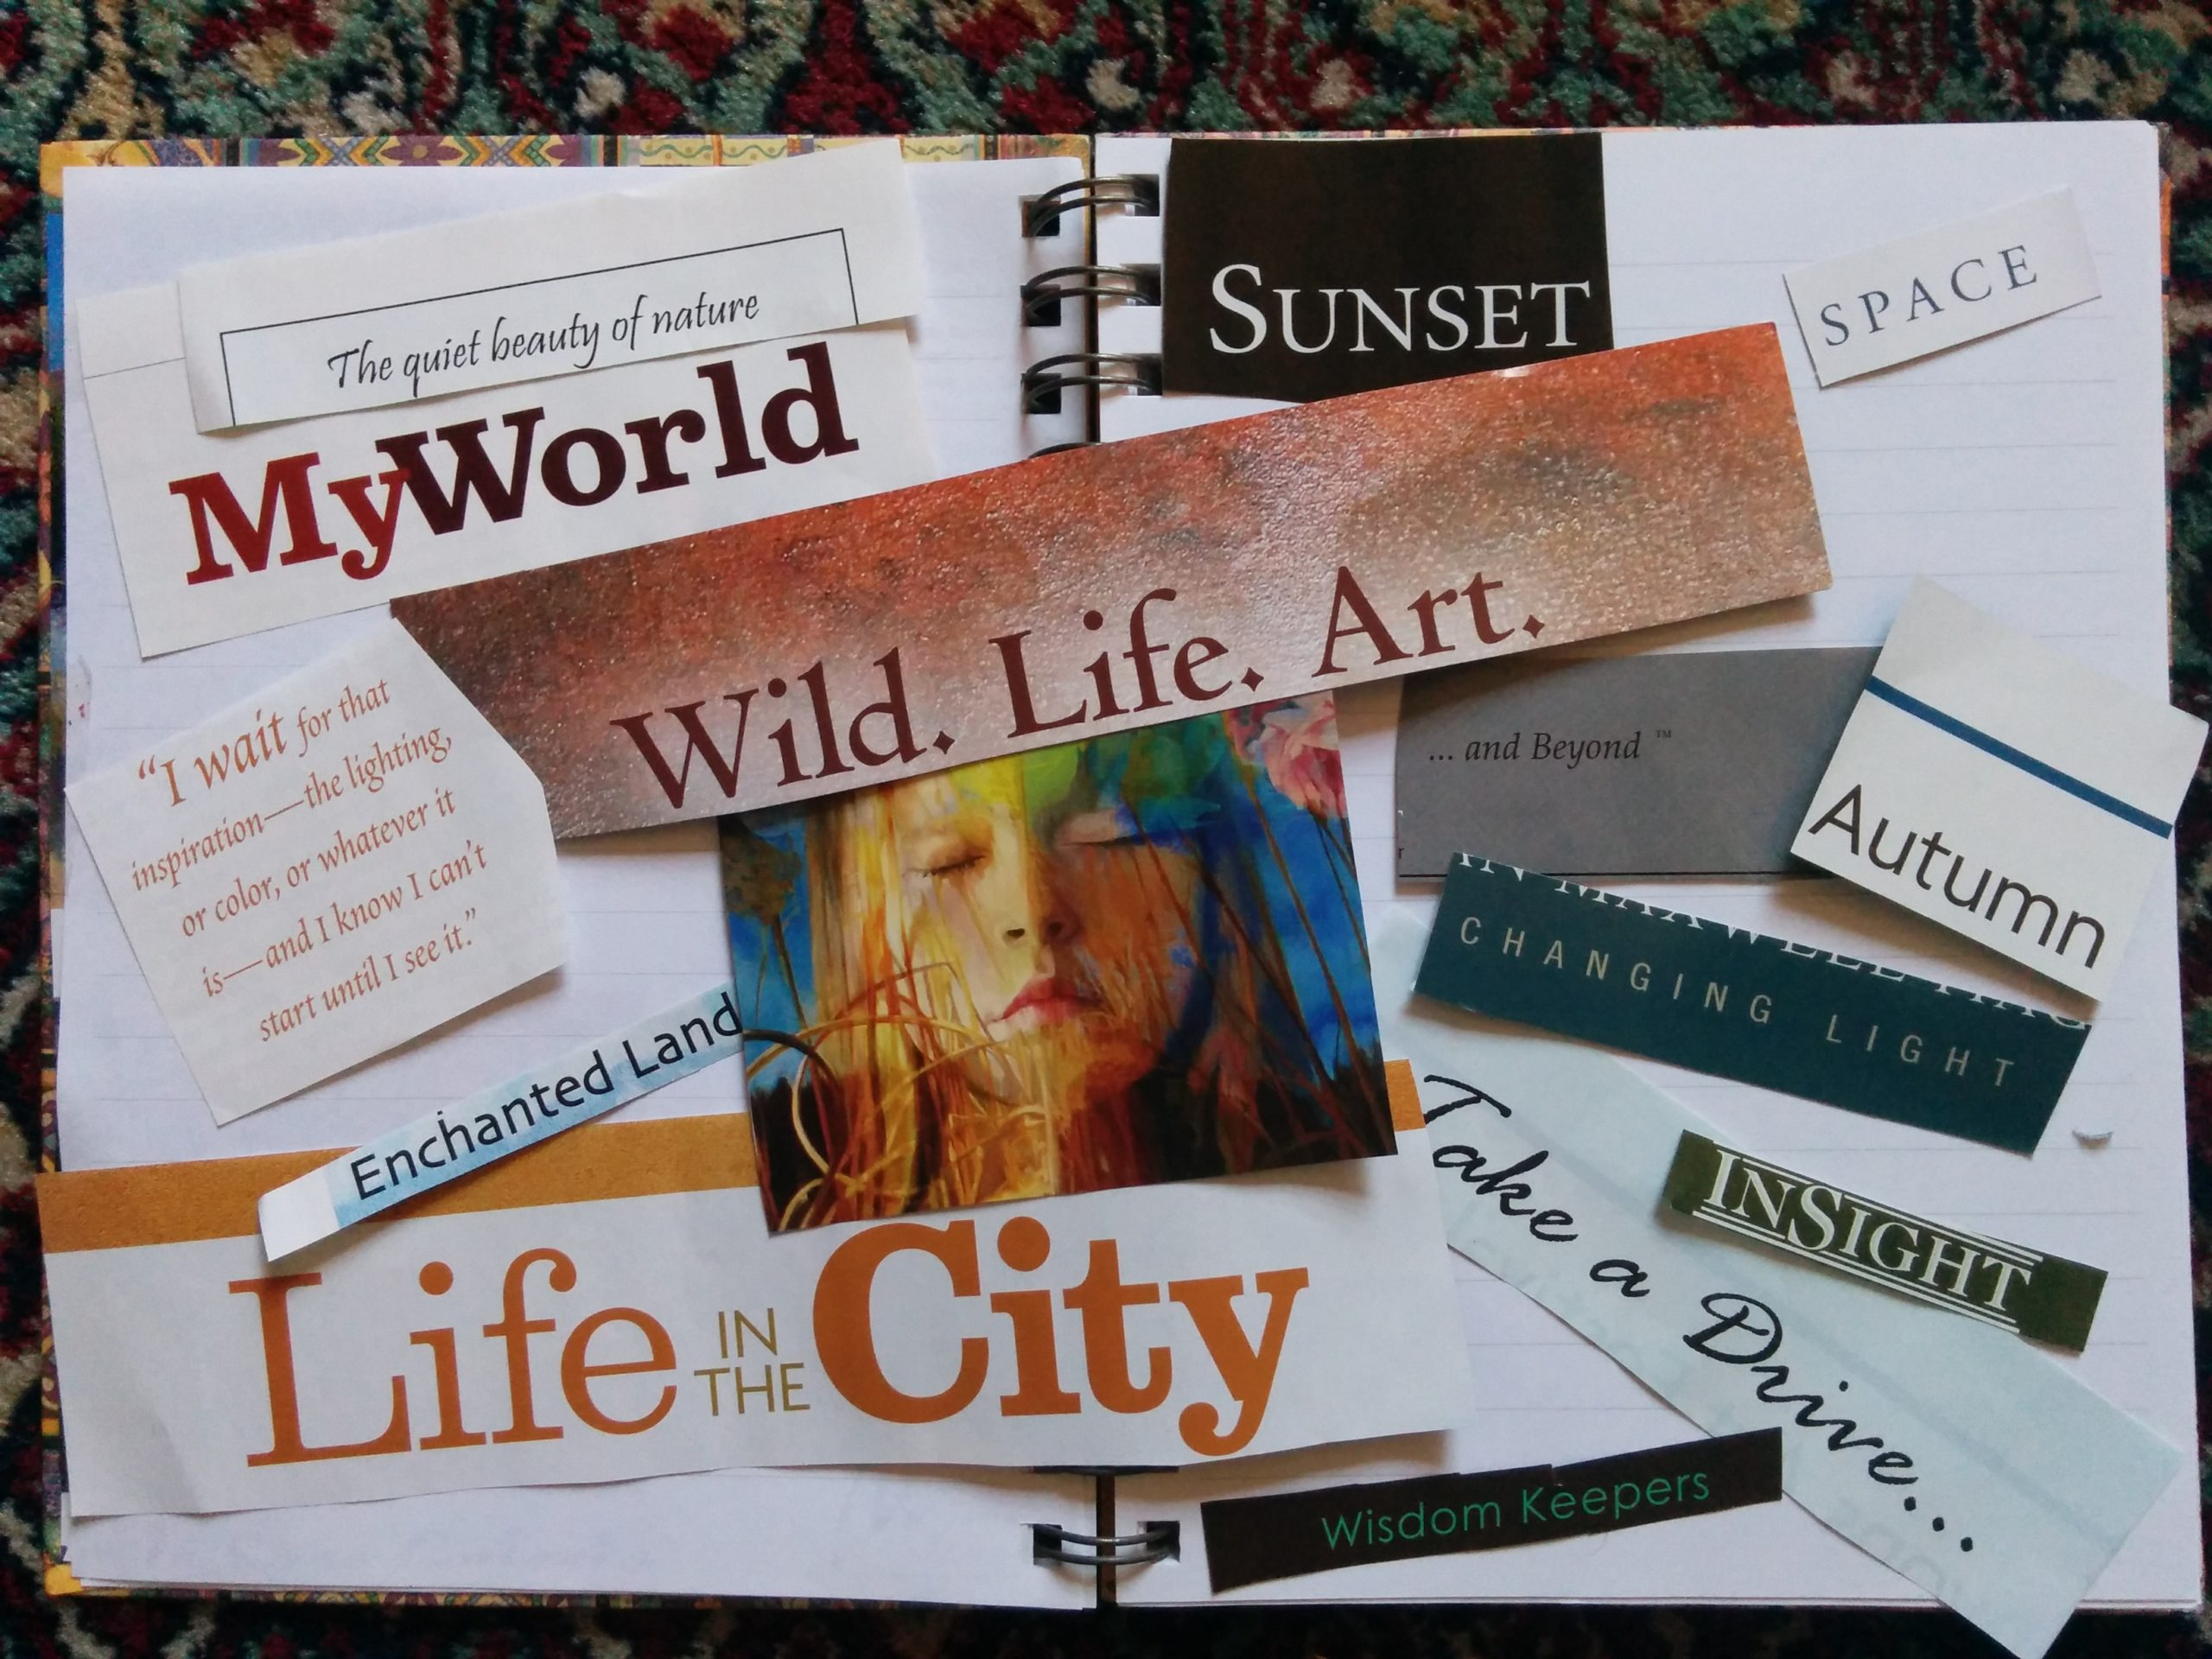 Vision board: How a vision board can make you travel the world